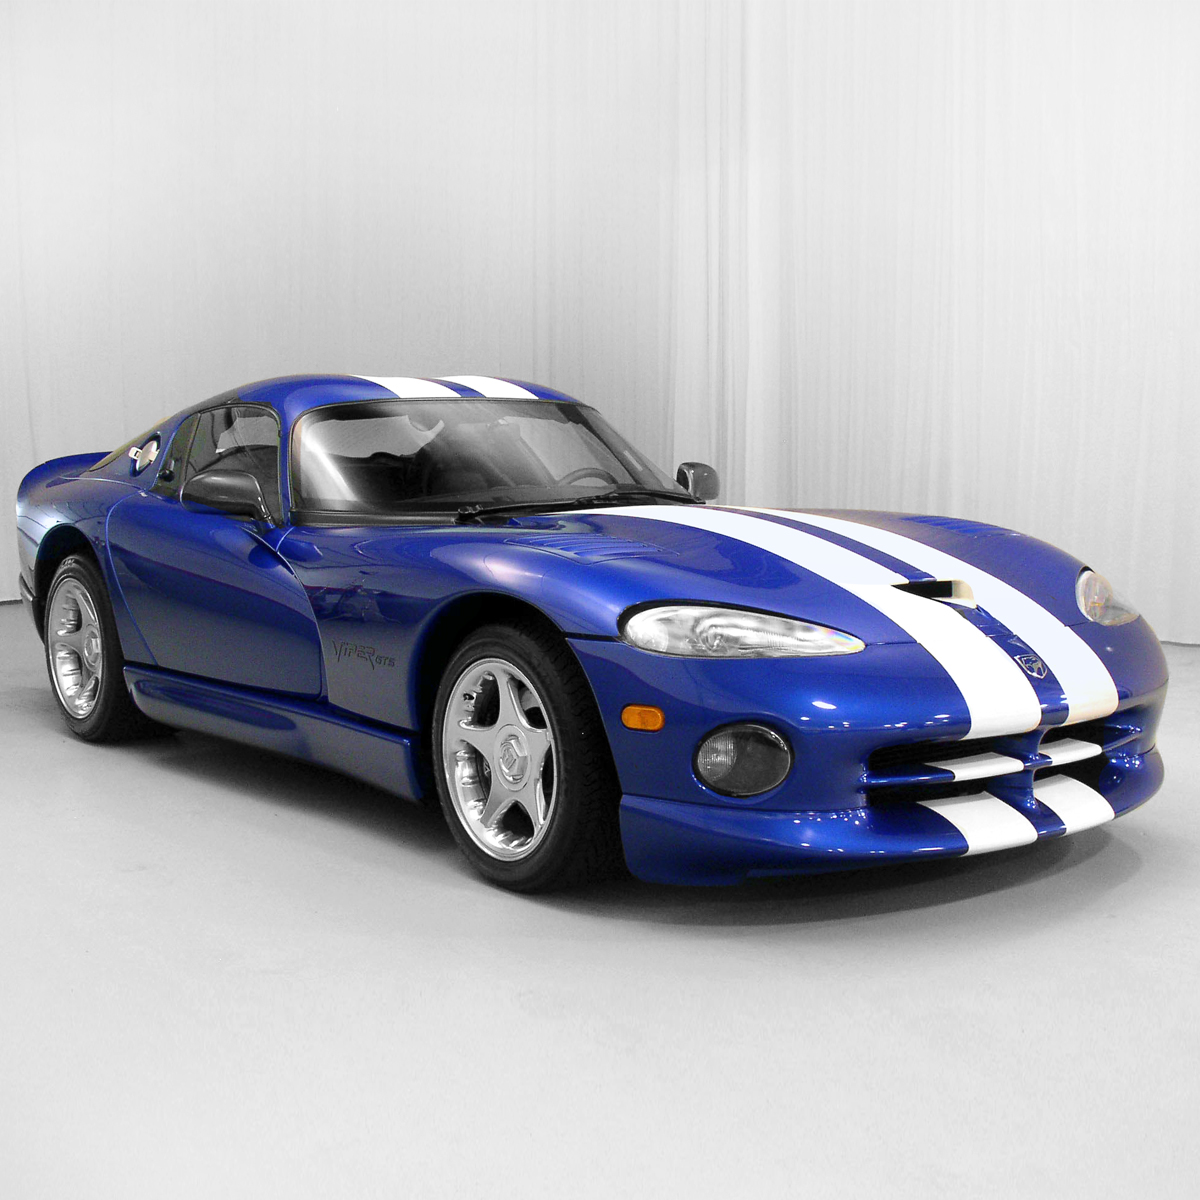 The top 5 dodge viper secrets progressive publicscrutiny Choice Image